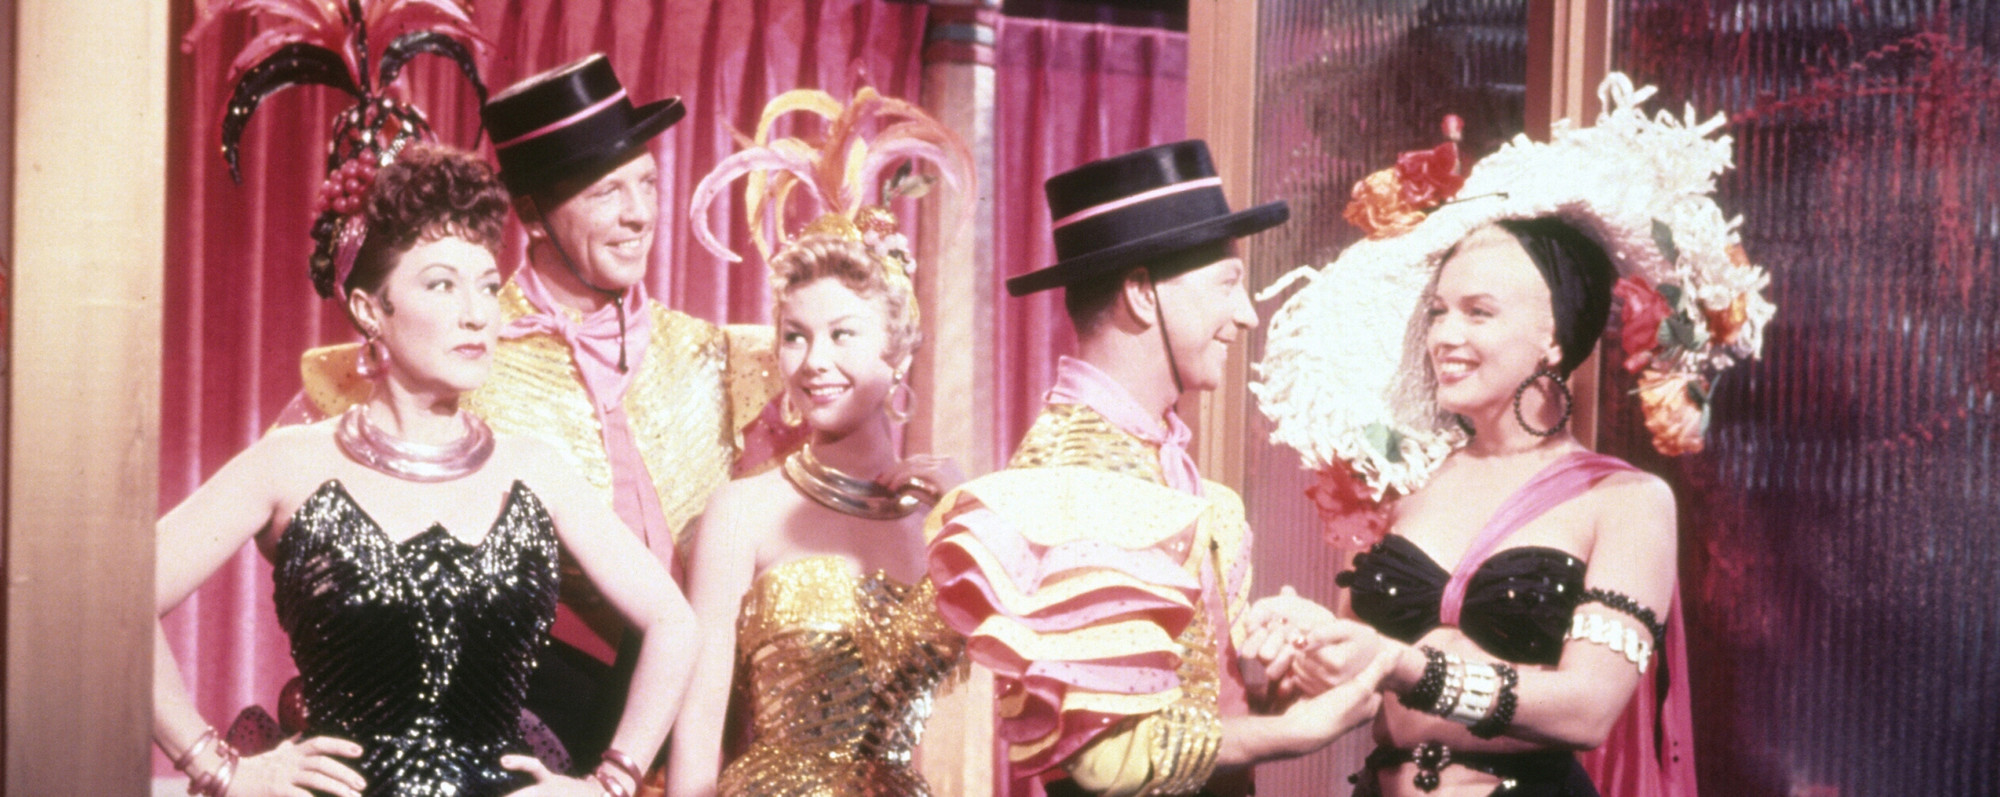 There's No Business Like Show Business. 1954. USA. Directed by Walter Lang. Courtesy 20th Century-Fox/Photofest